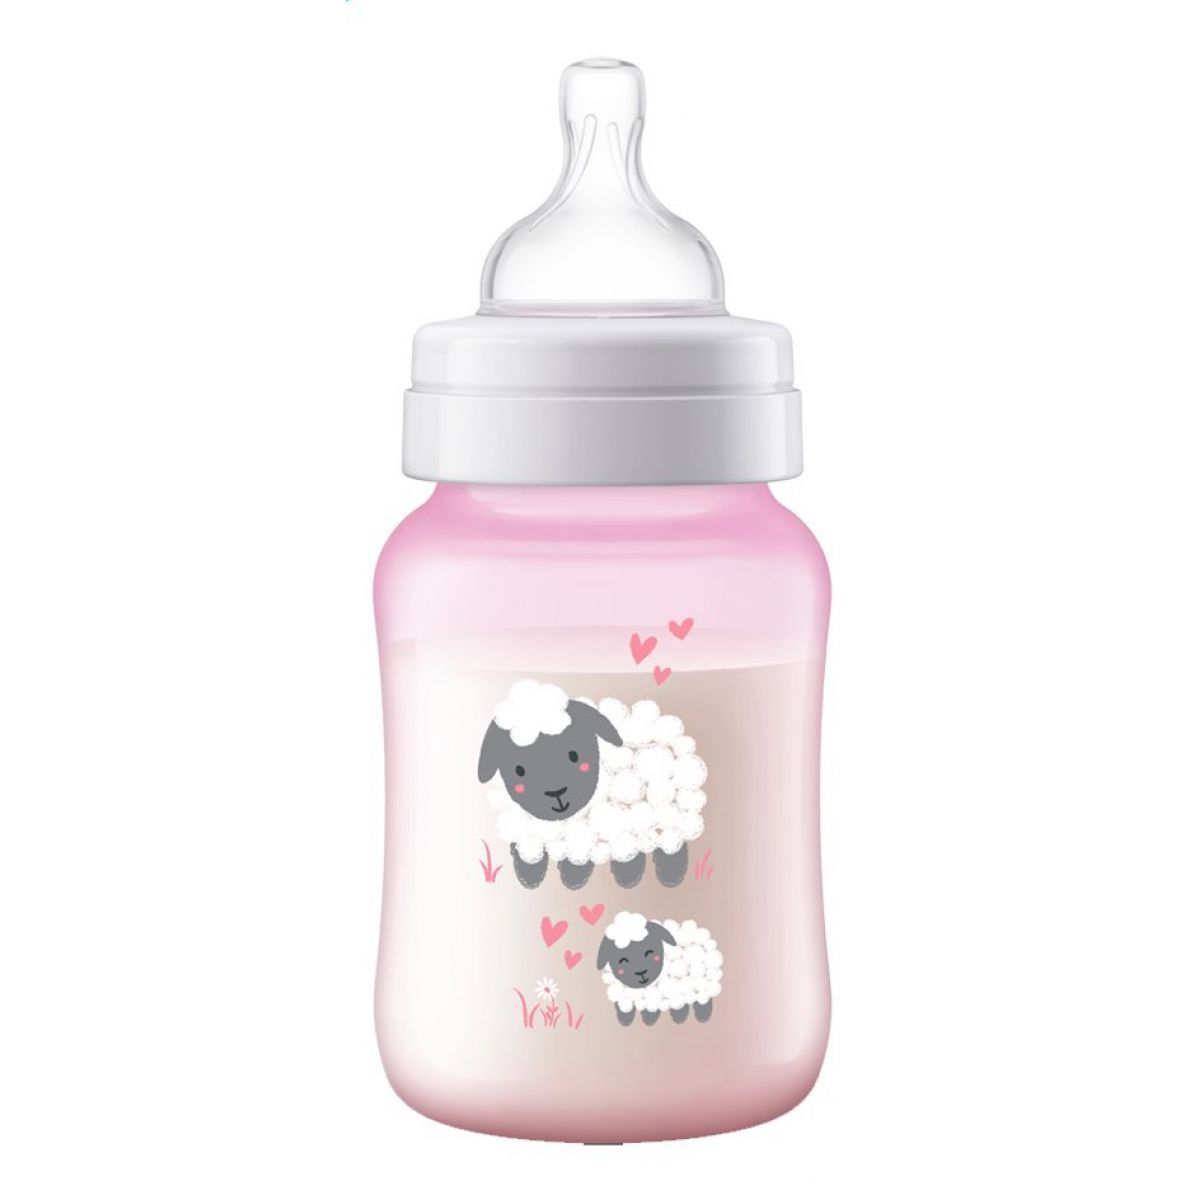 Philips Avent Lahev Anti-colic 260 ml 1 ks růžová ovečka